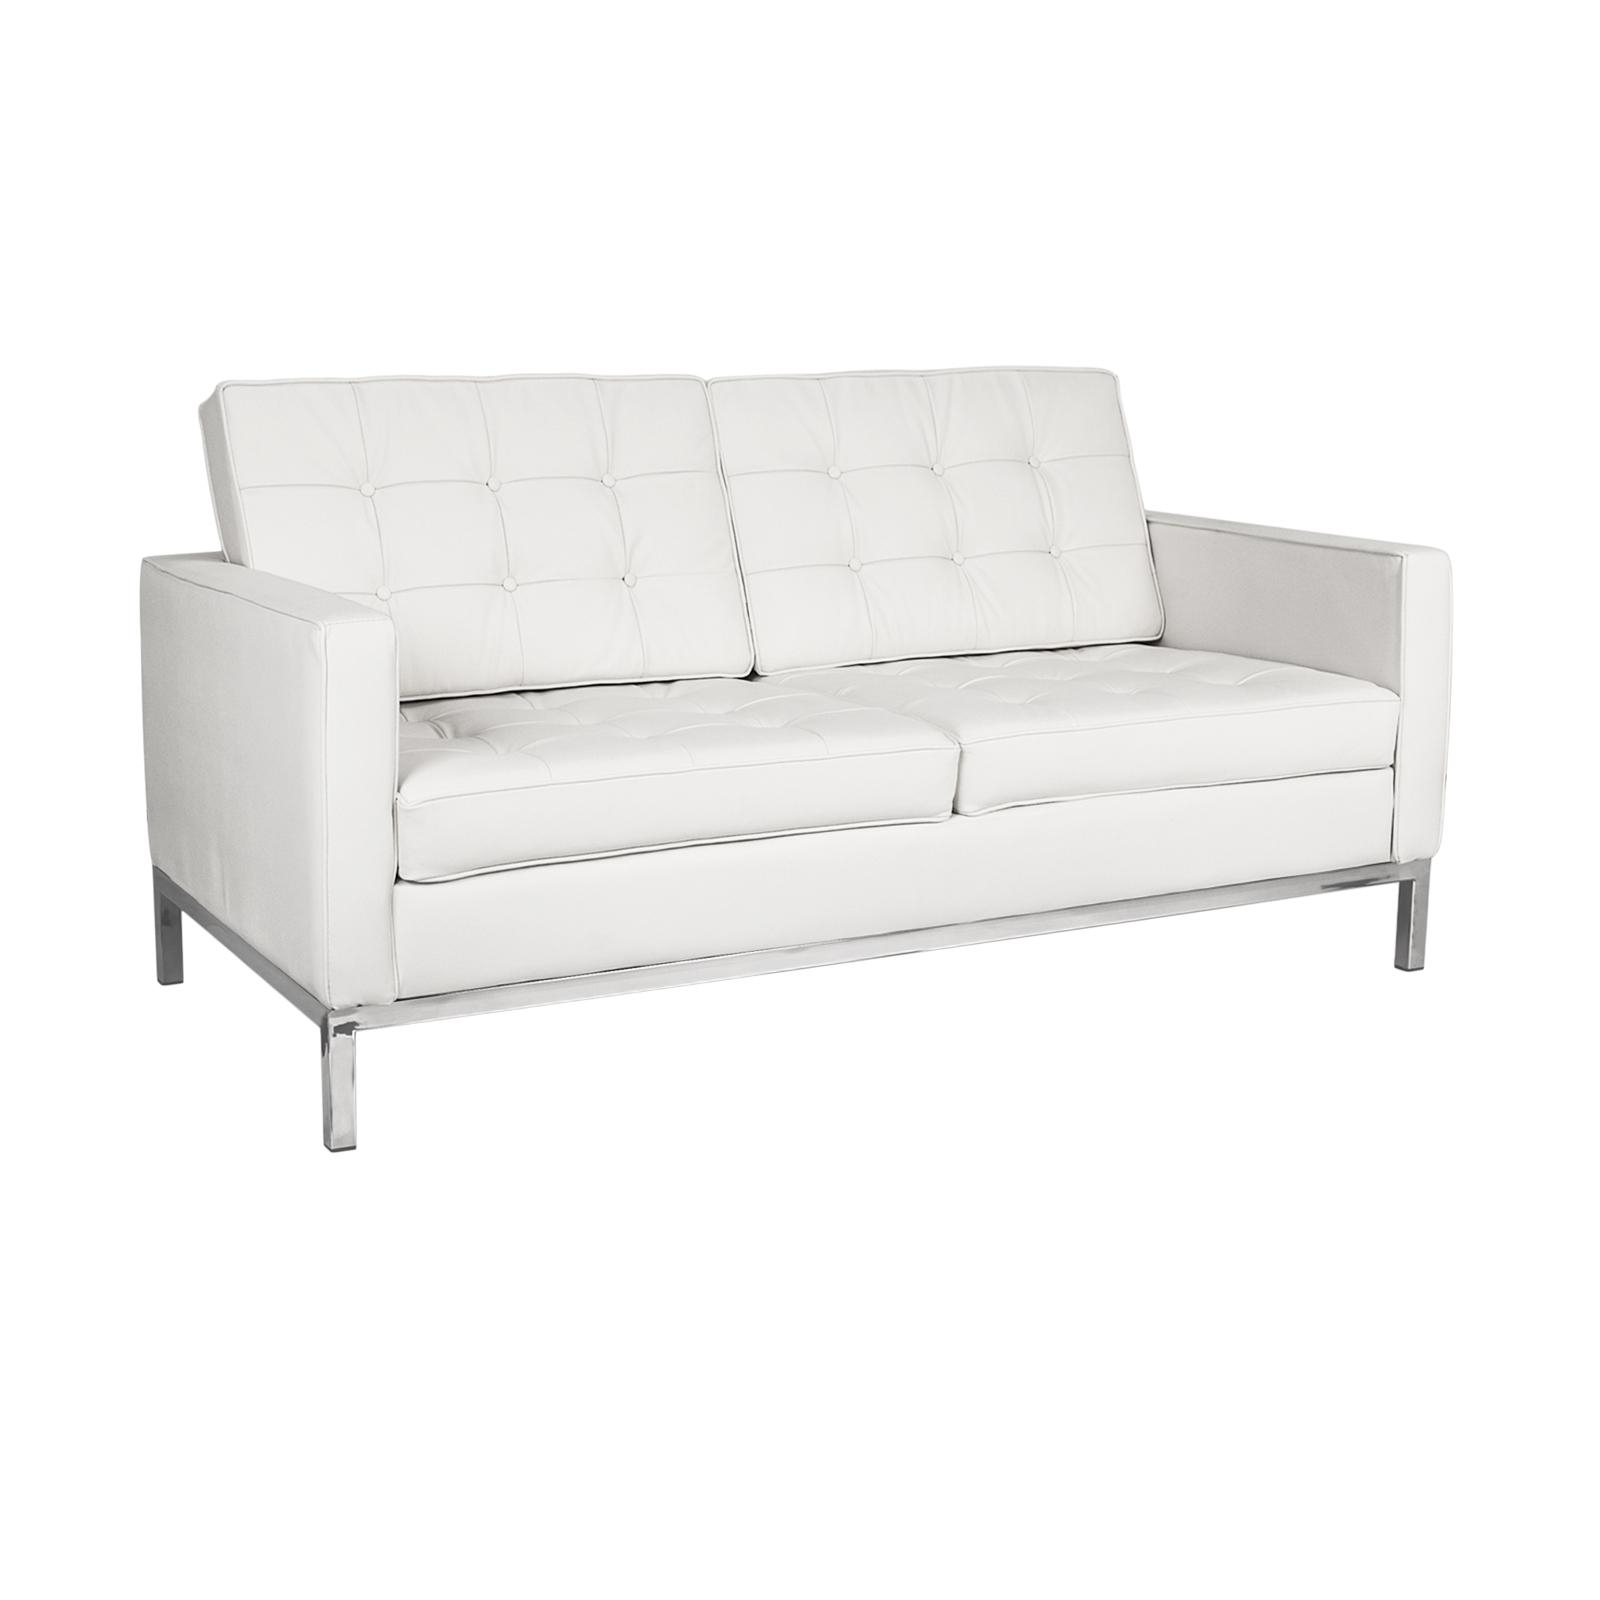 Florence Knoll Loveseat Rentals | Event Furniture Rental With Florence Sofas And Loveseats (View 8 of 20)